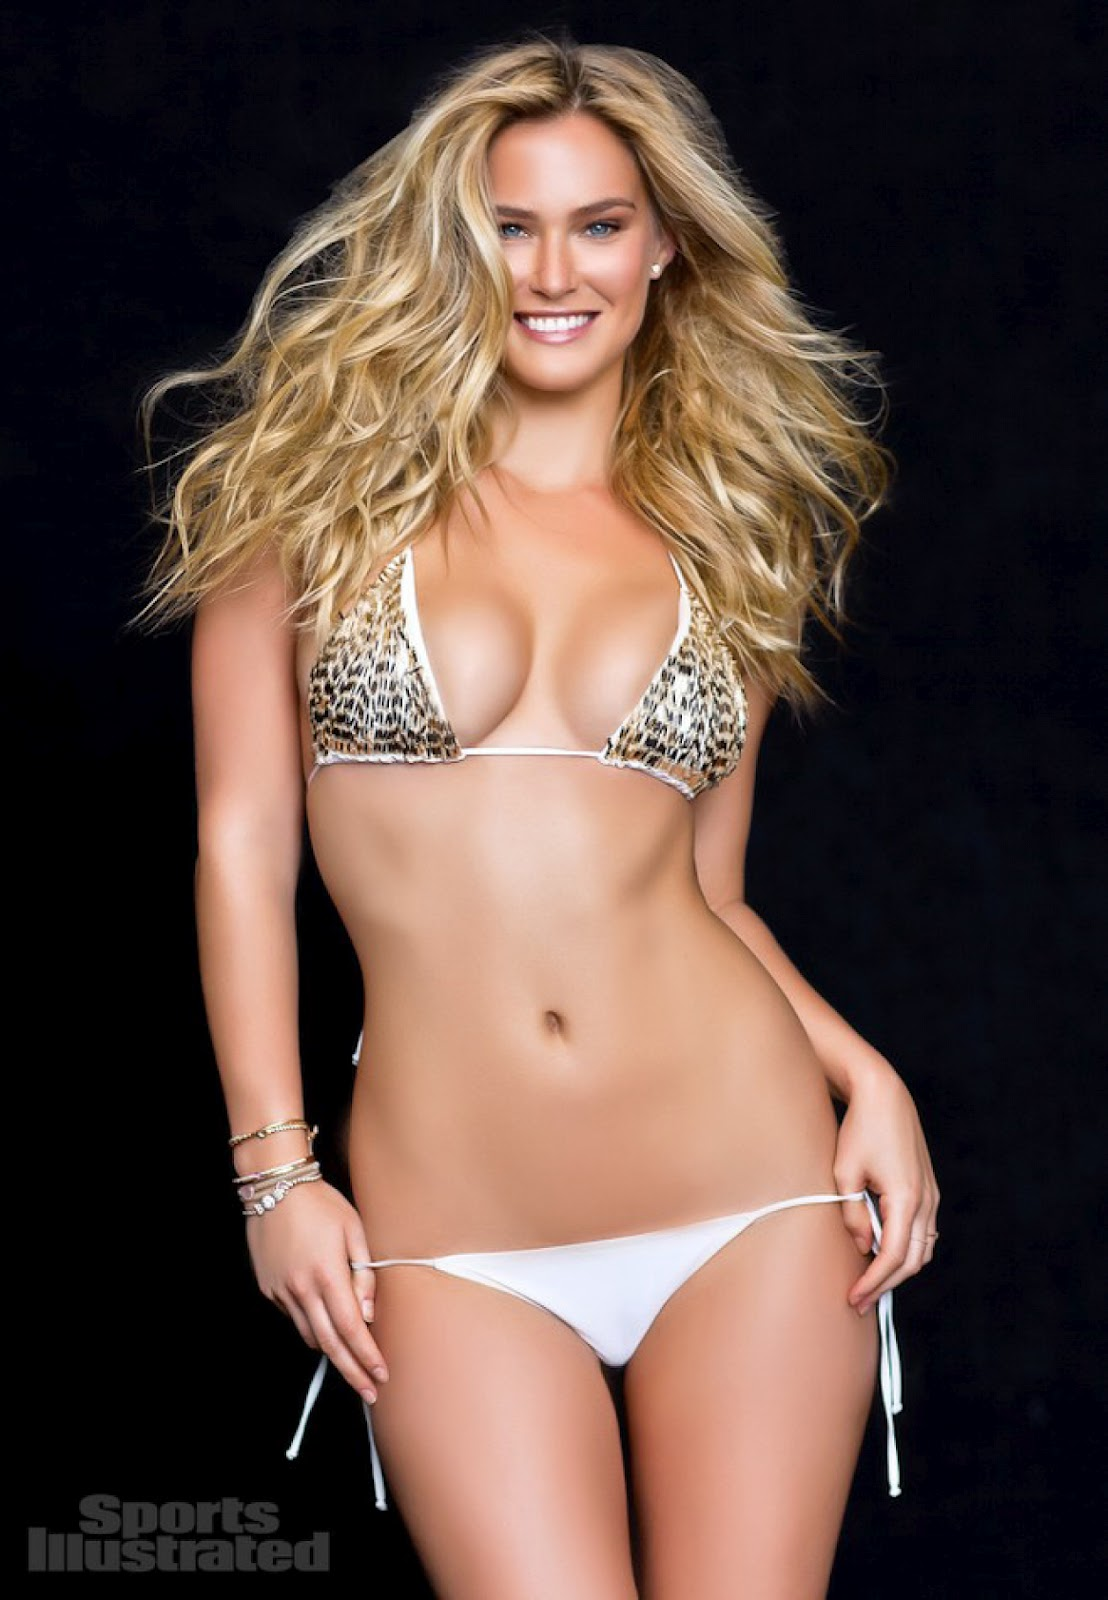 Wife hot fucked Bar refaeli bikini next.................. Great